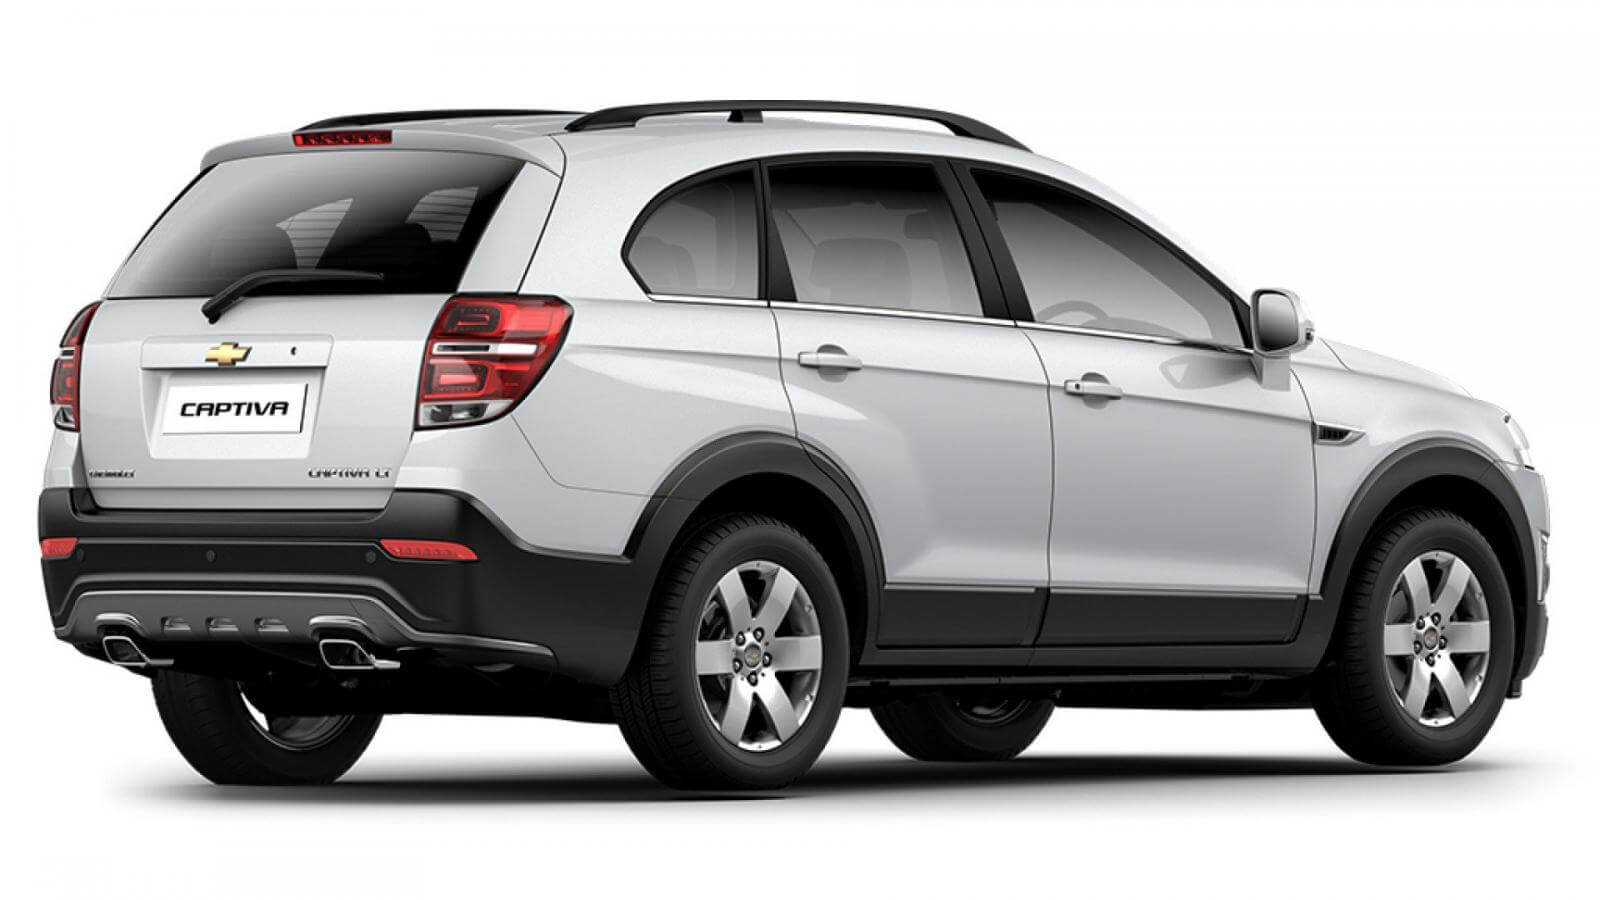 chevrolet captiva wallpapers free download. Black Bedroom Furniture Sets. Home Design Ideas